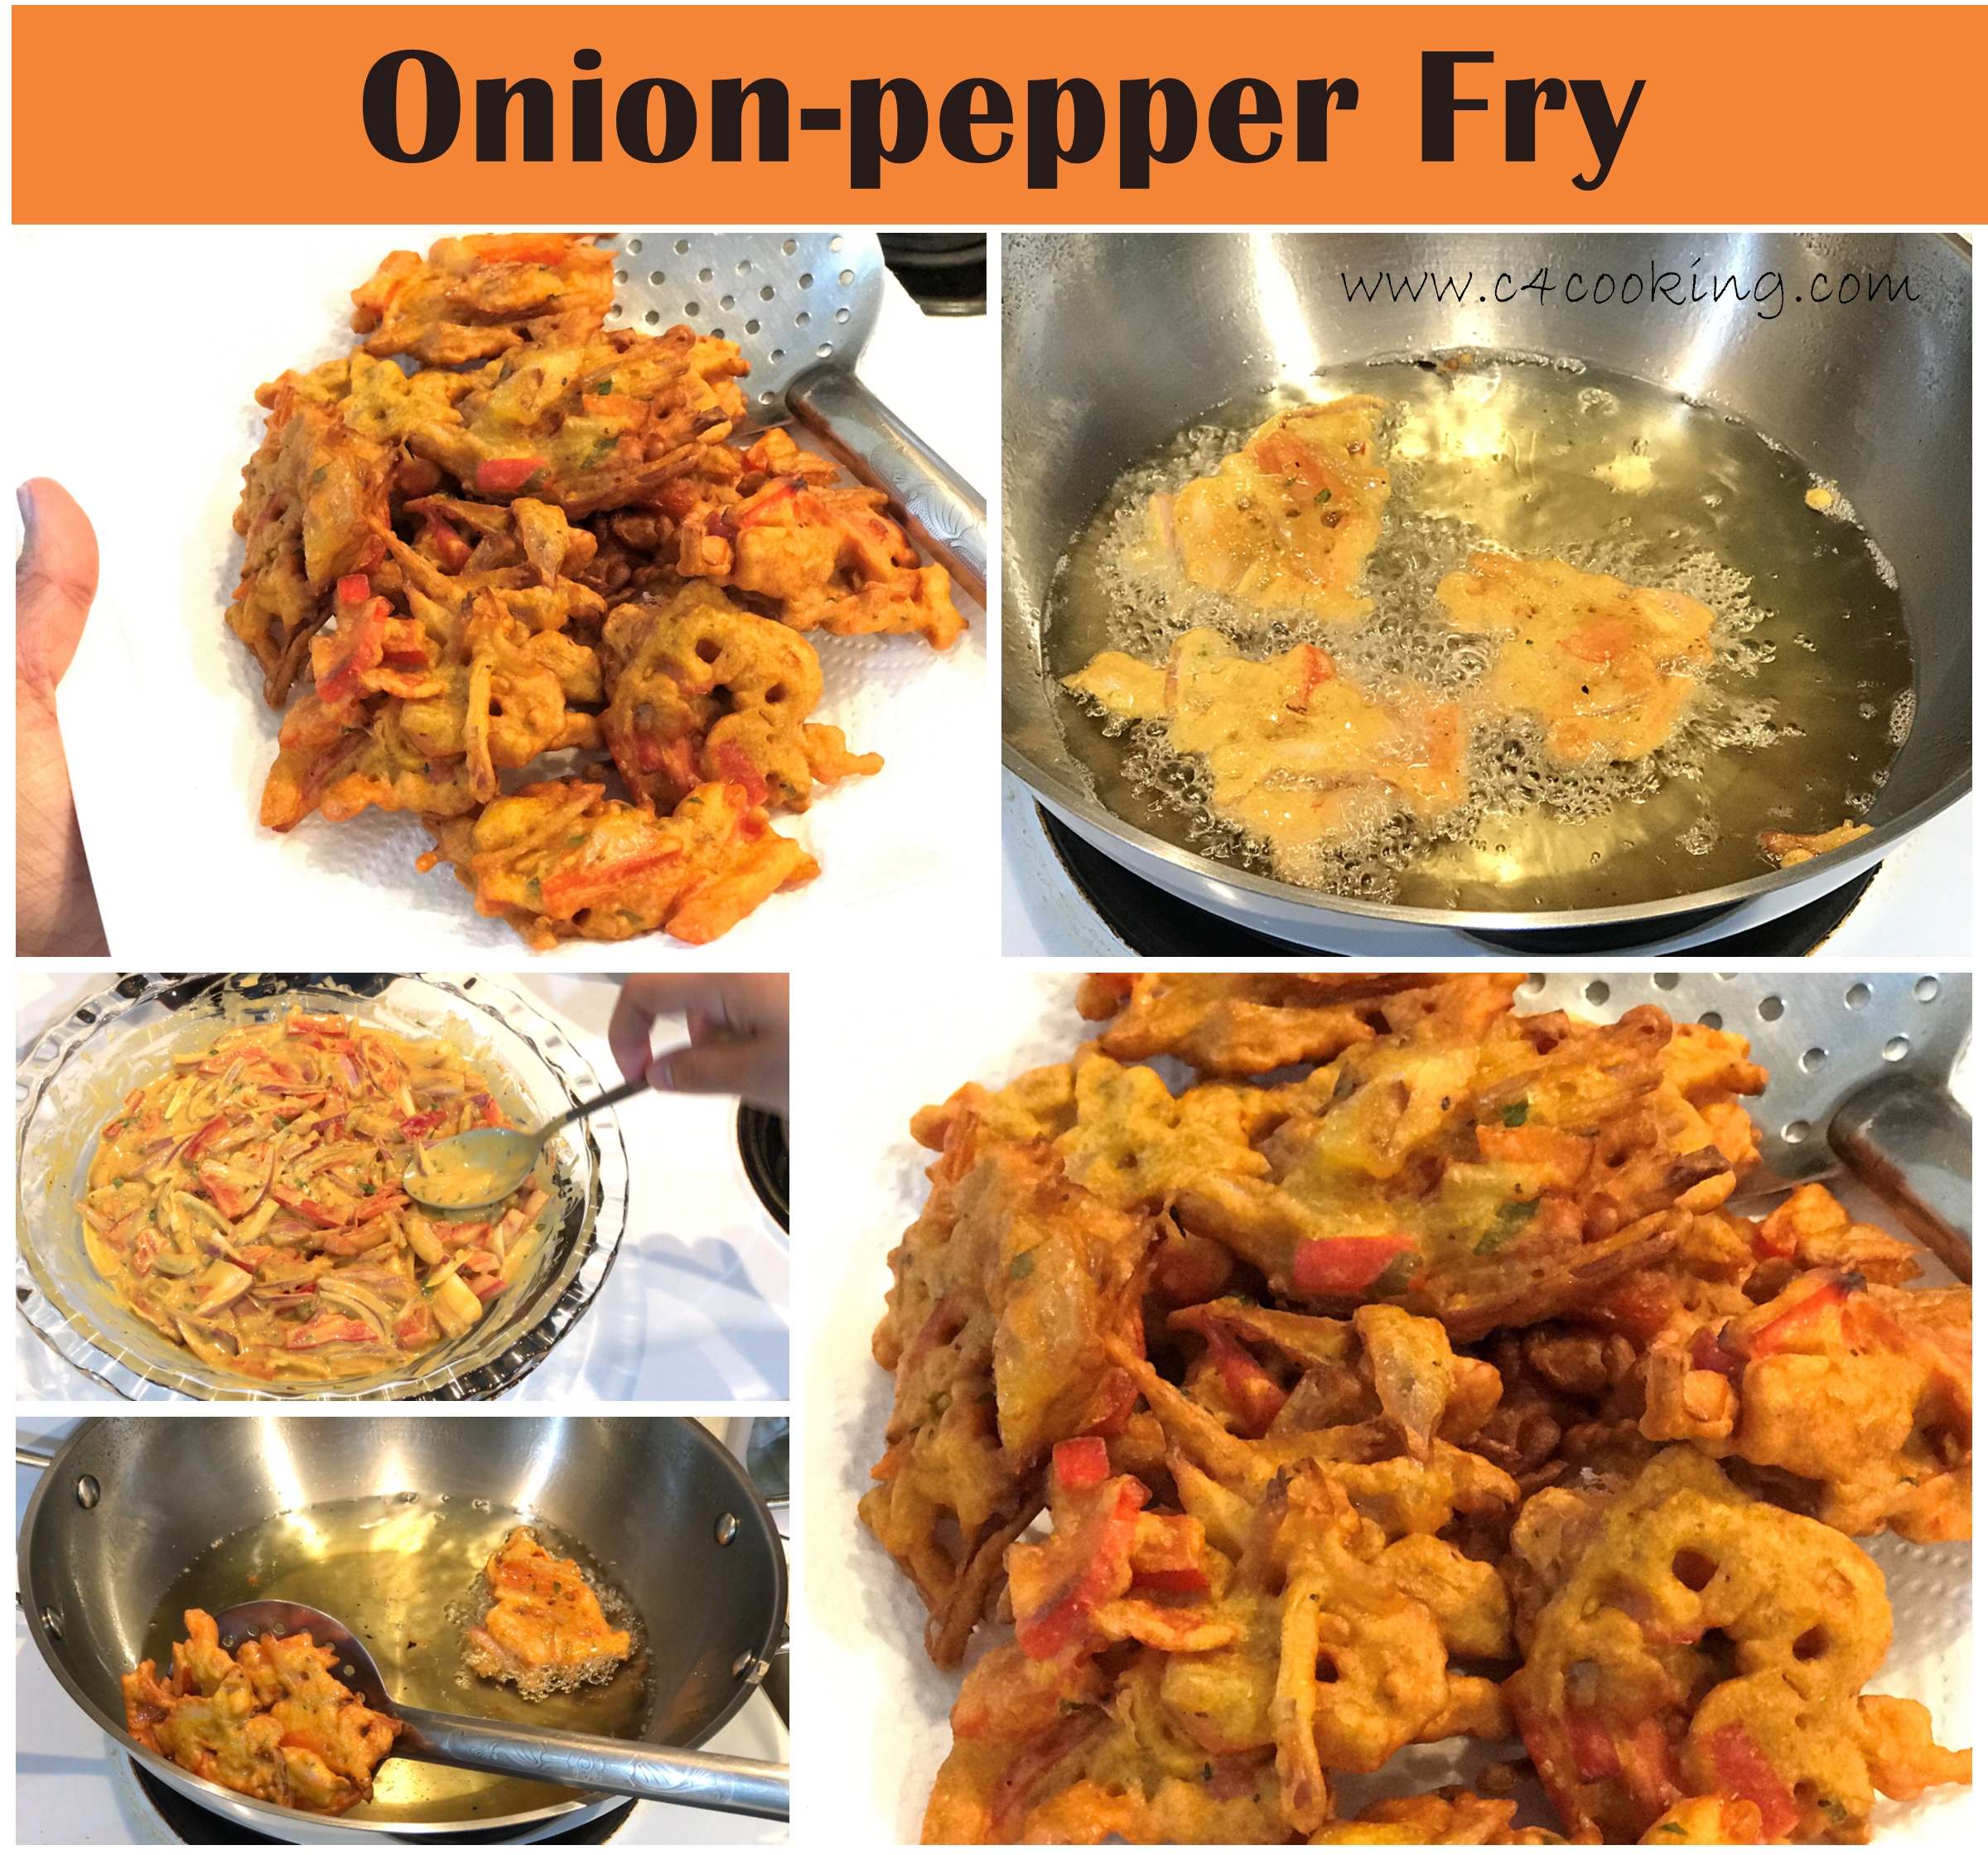 onion-pepper fry, onion bhajji recipe, onion bajji, ulli bajji recipe, c4cooking onion-pepper fry, c4cooking onion-pepper bhajji recipe, tea-time snacks, comfort snacks